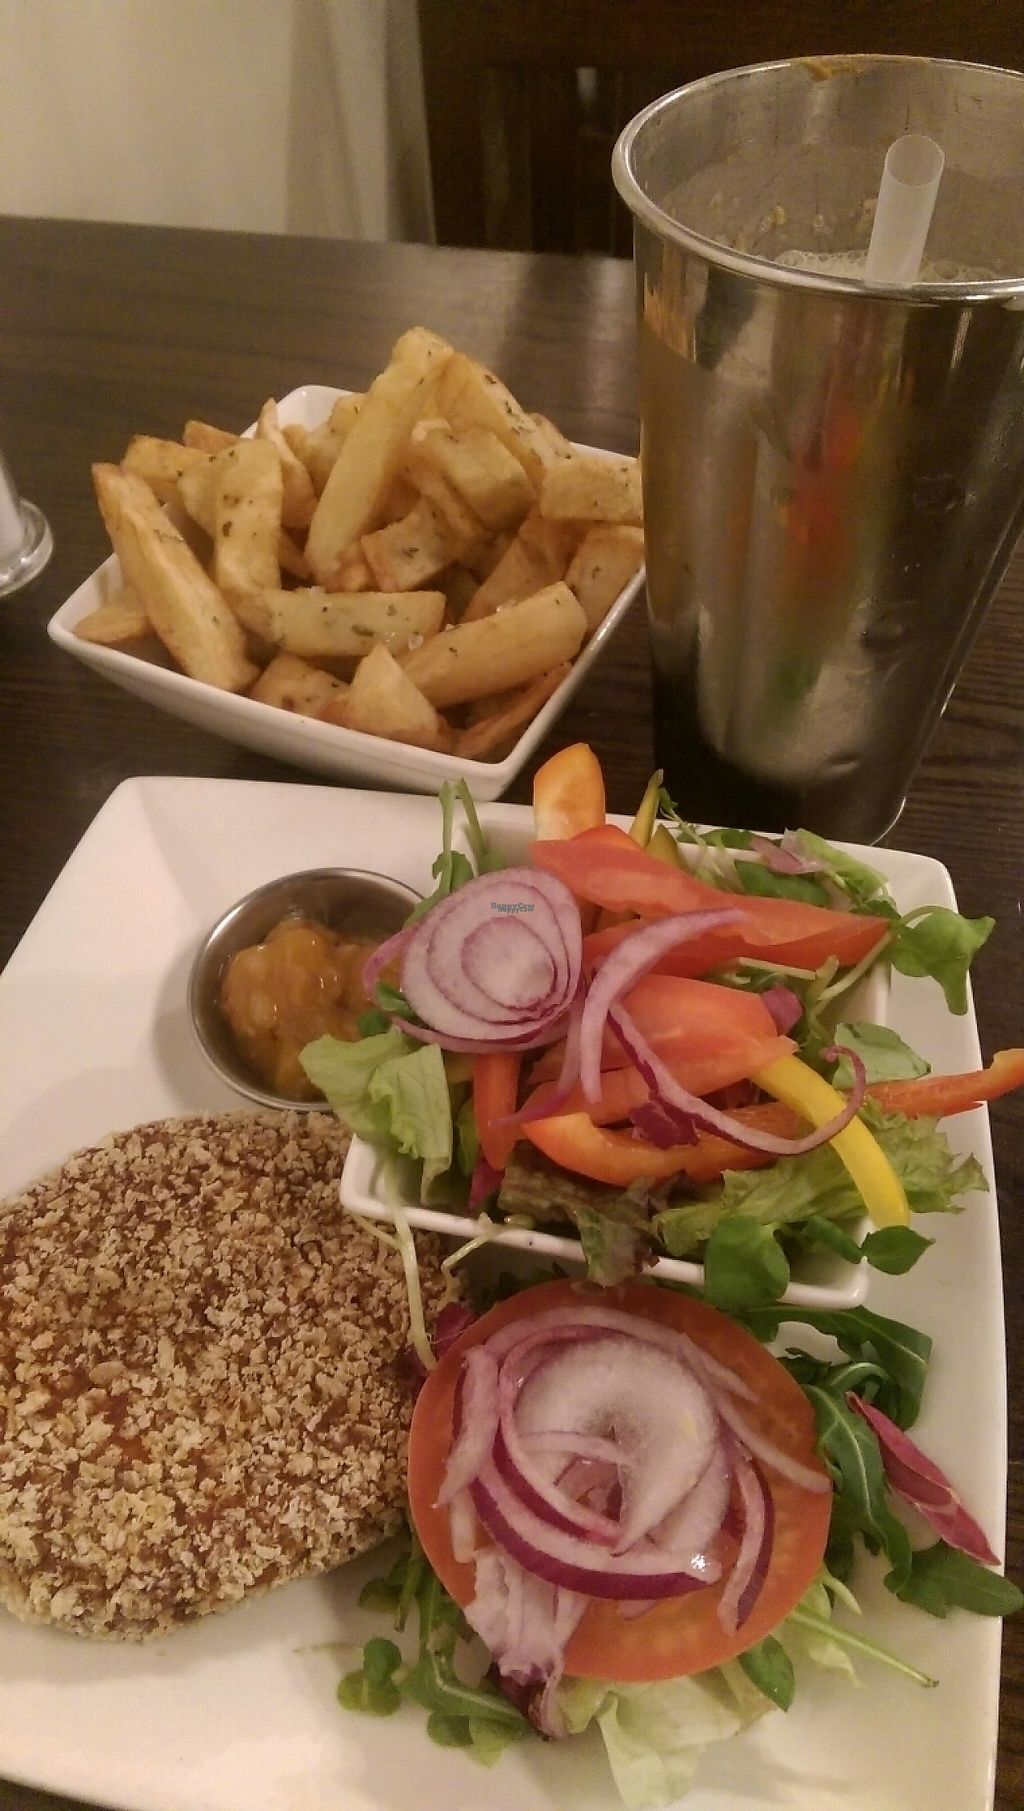 "Photo of Handmade Burger Co.  by <a href=""/members/profile/Melissaj1990"">Melissaj1990</a> <br/>Gluten free vegan burger and shake  <br/> January 1, 2017  - <a href='/contact/abuse/image/78257/206957'>Report</a>"